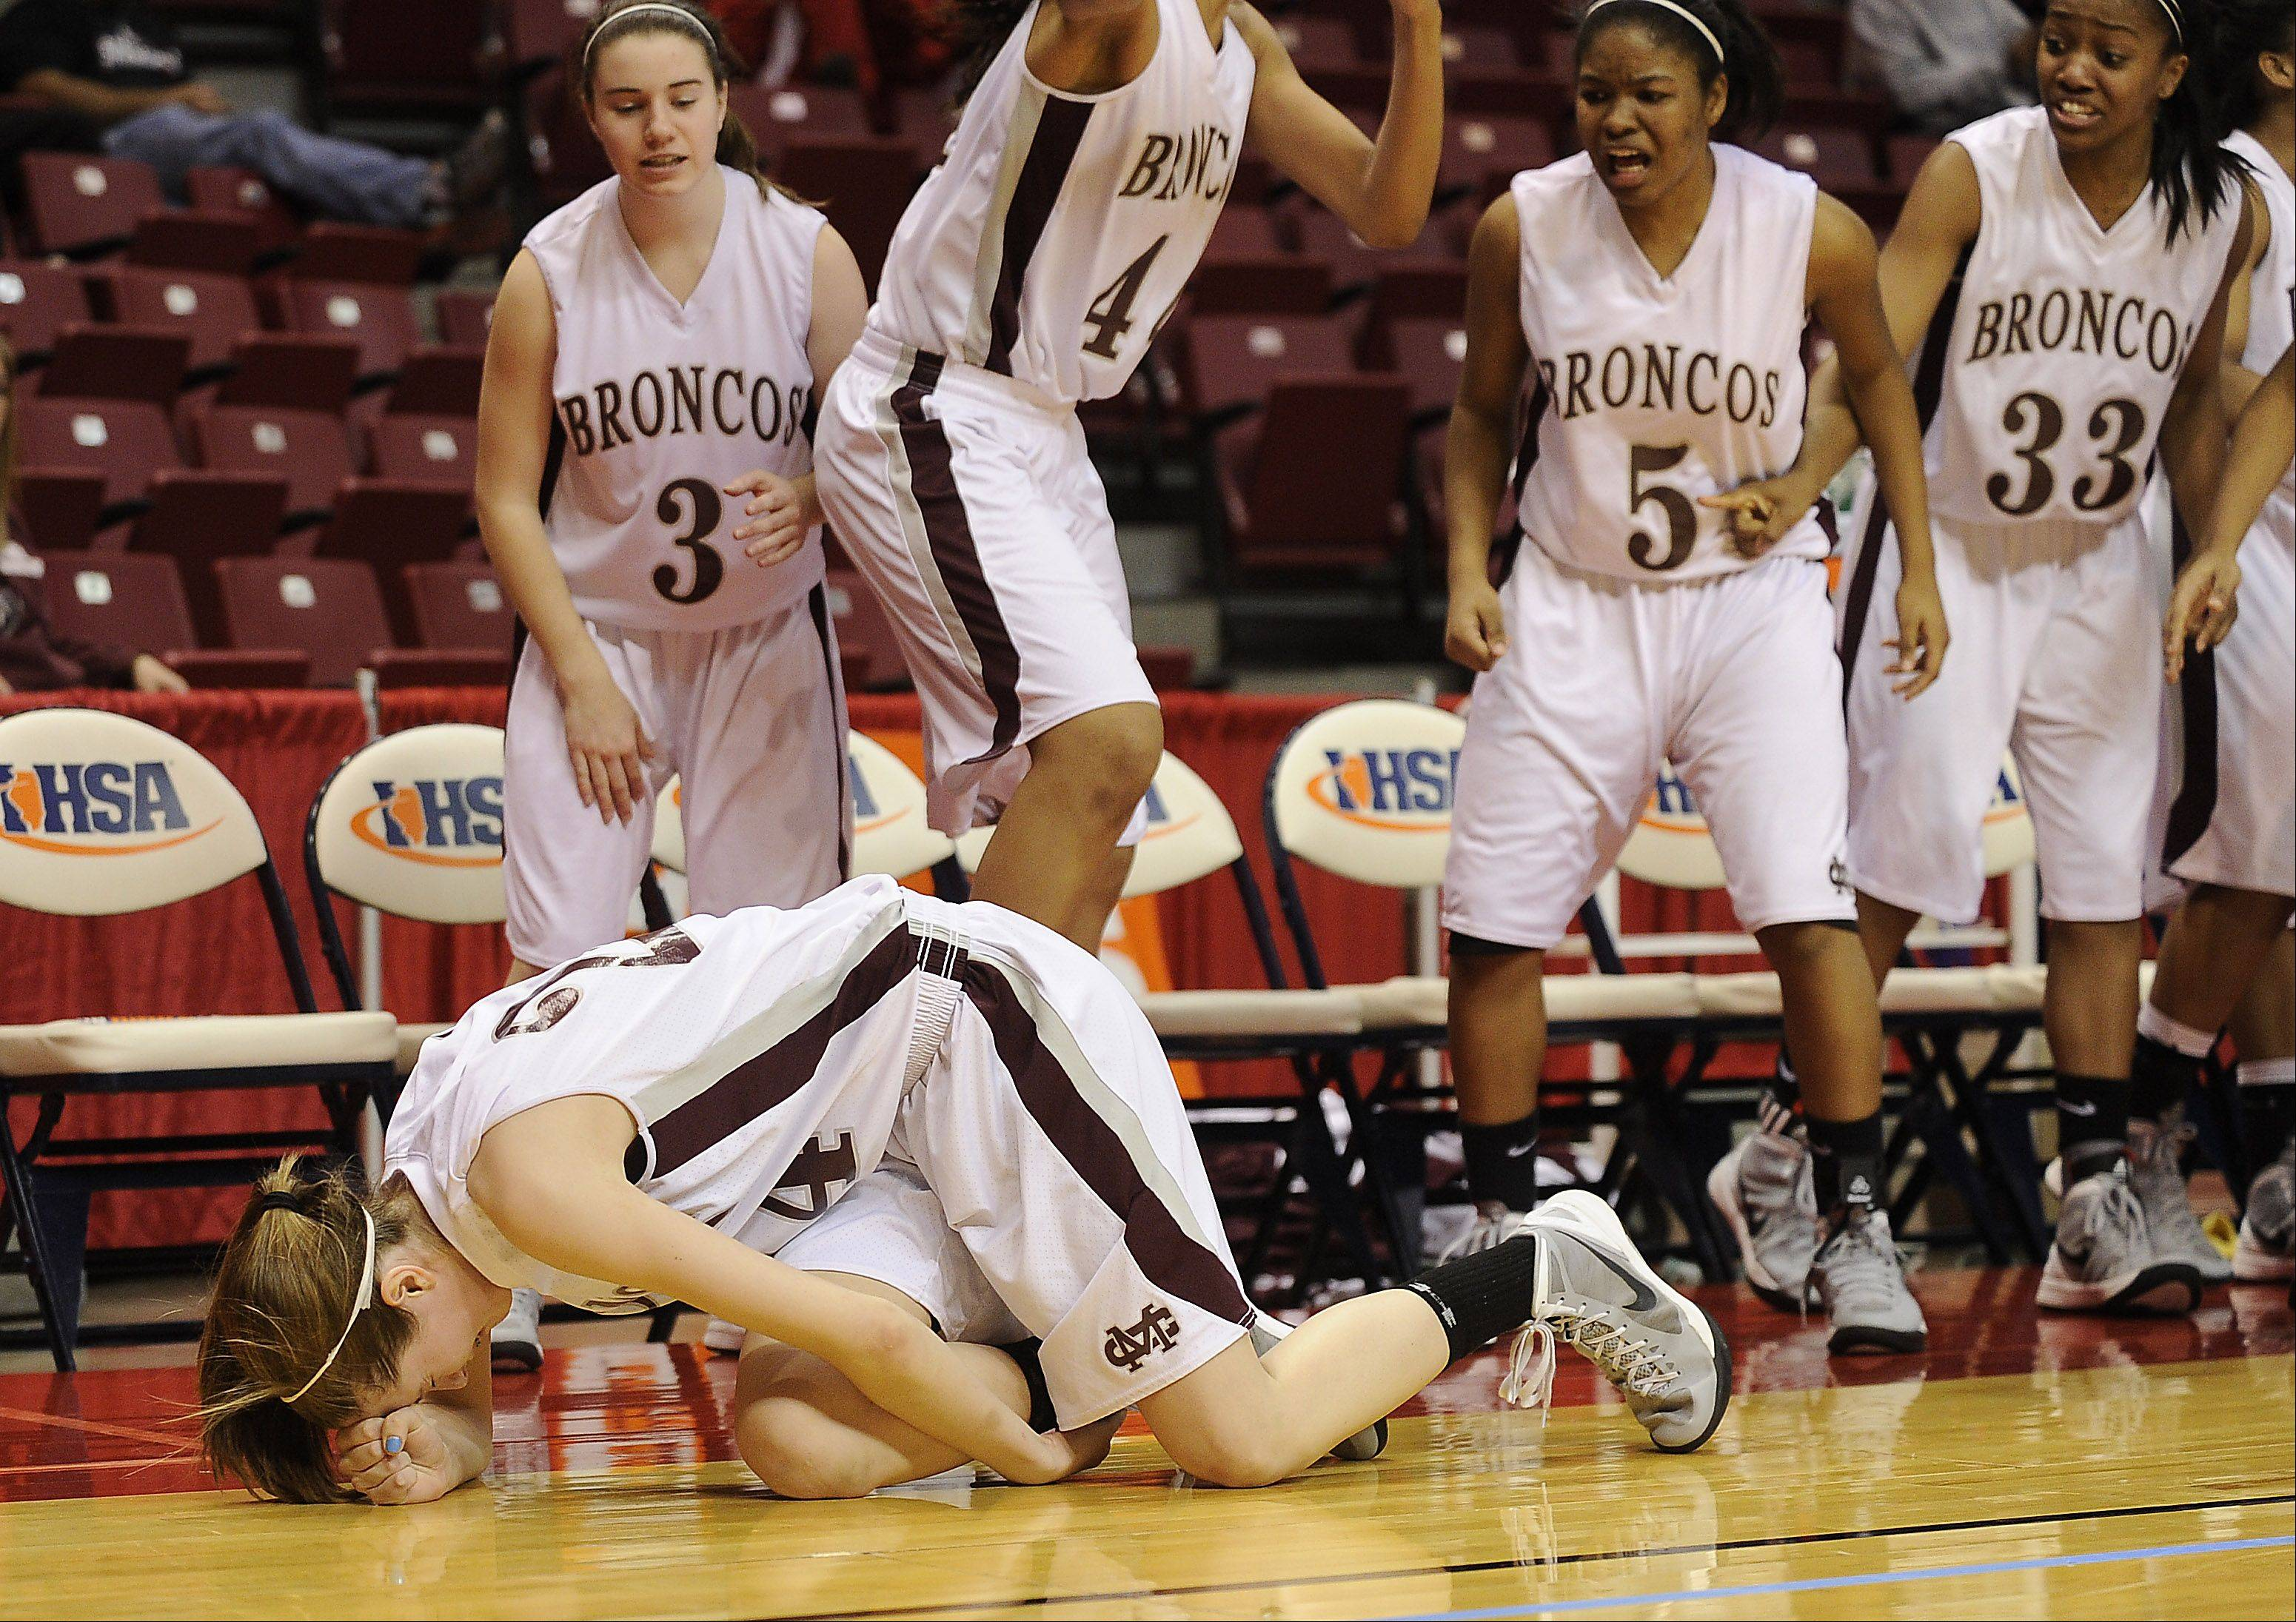 Montini's Kateri Stone goes down after shooting a three-pointer late in the second half against Hillcrest in the 2012 IHSA Class 3A Girls Basketball Tournament in Normal, Illinois on Friday.